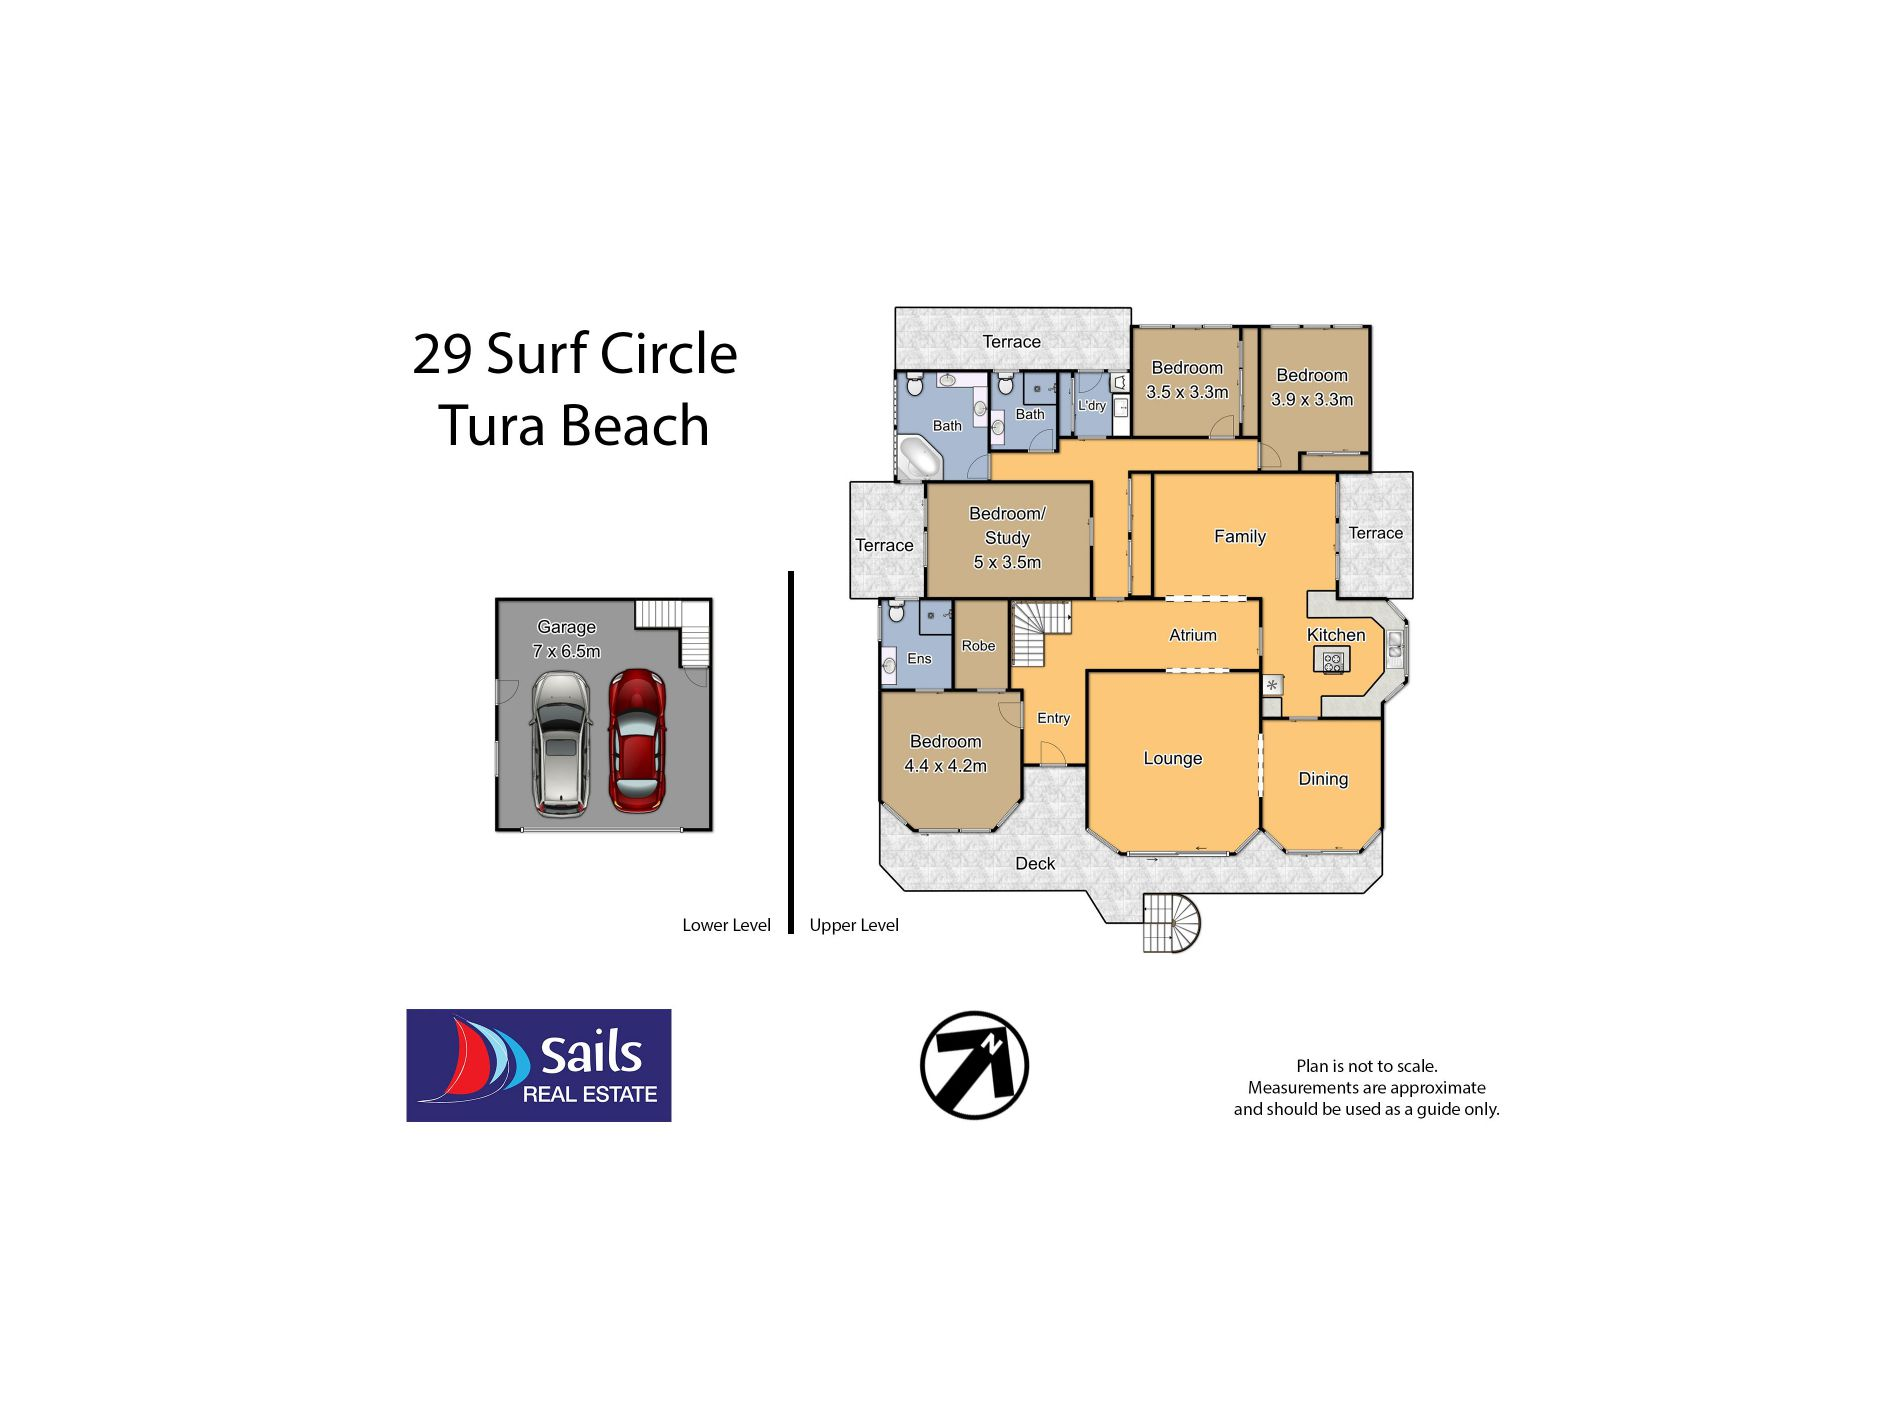 29 Surf Circle, Tura Beach